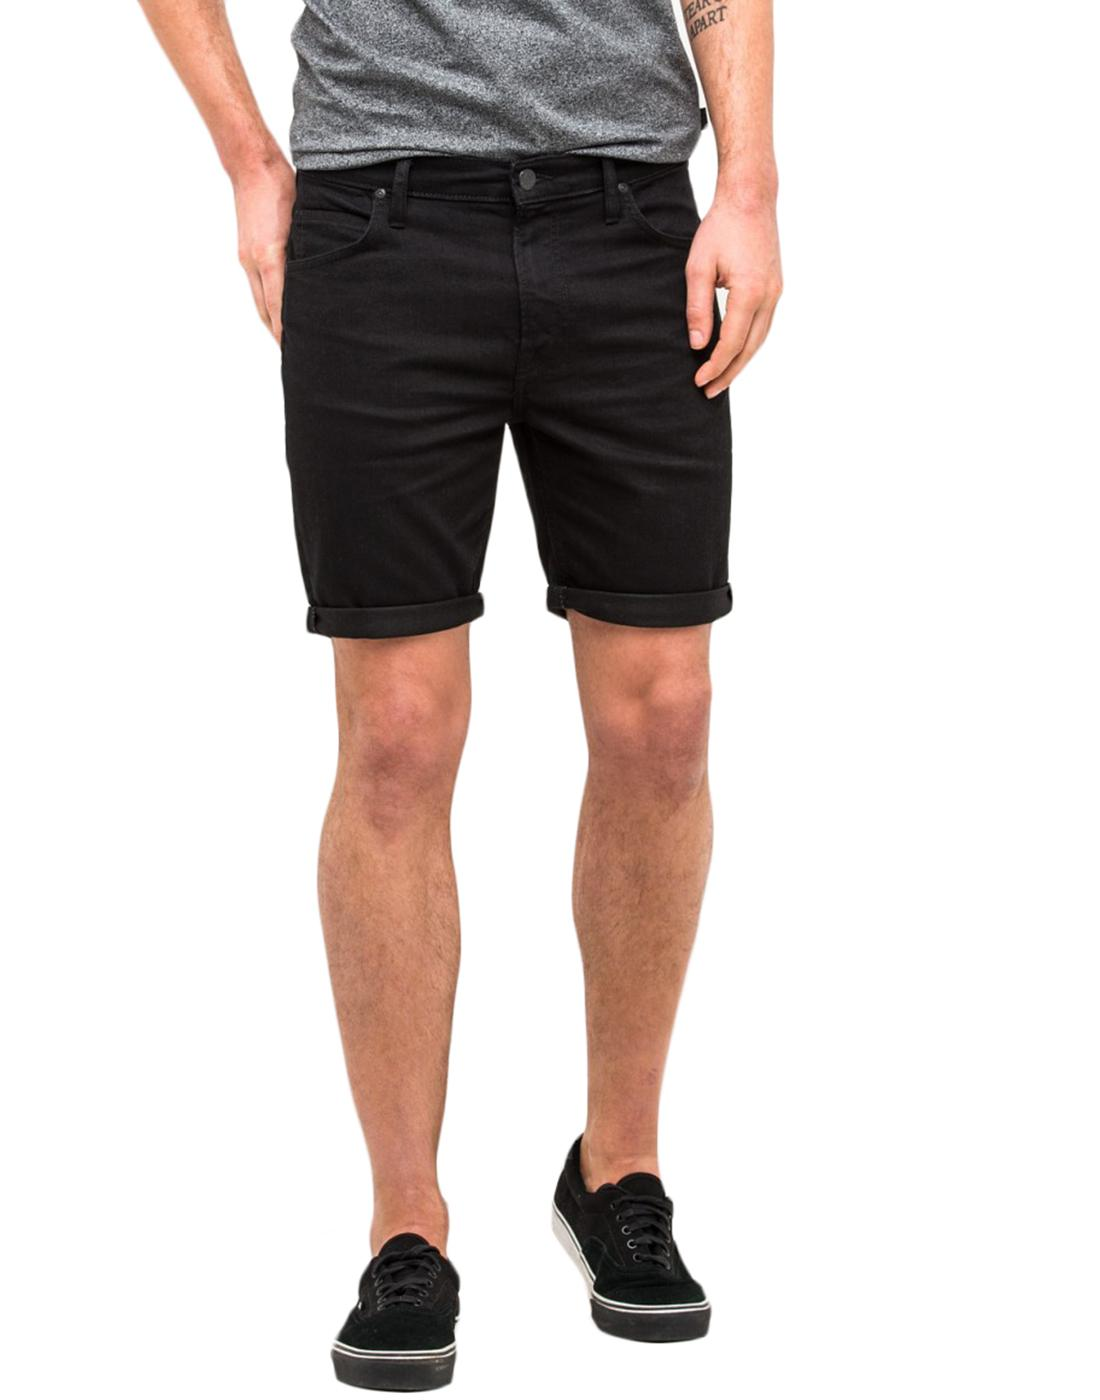 Rider Shorts LEE JEANS Retro Denim Shorts Black